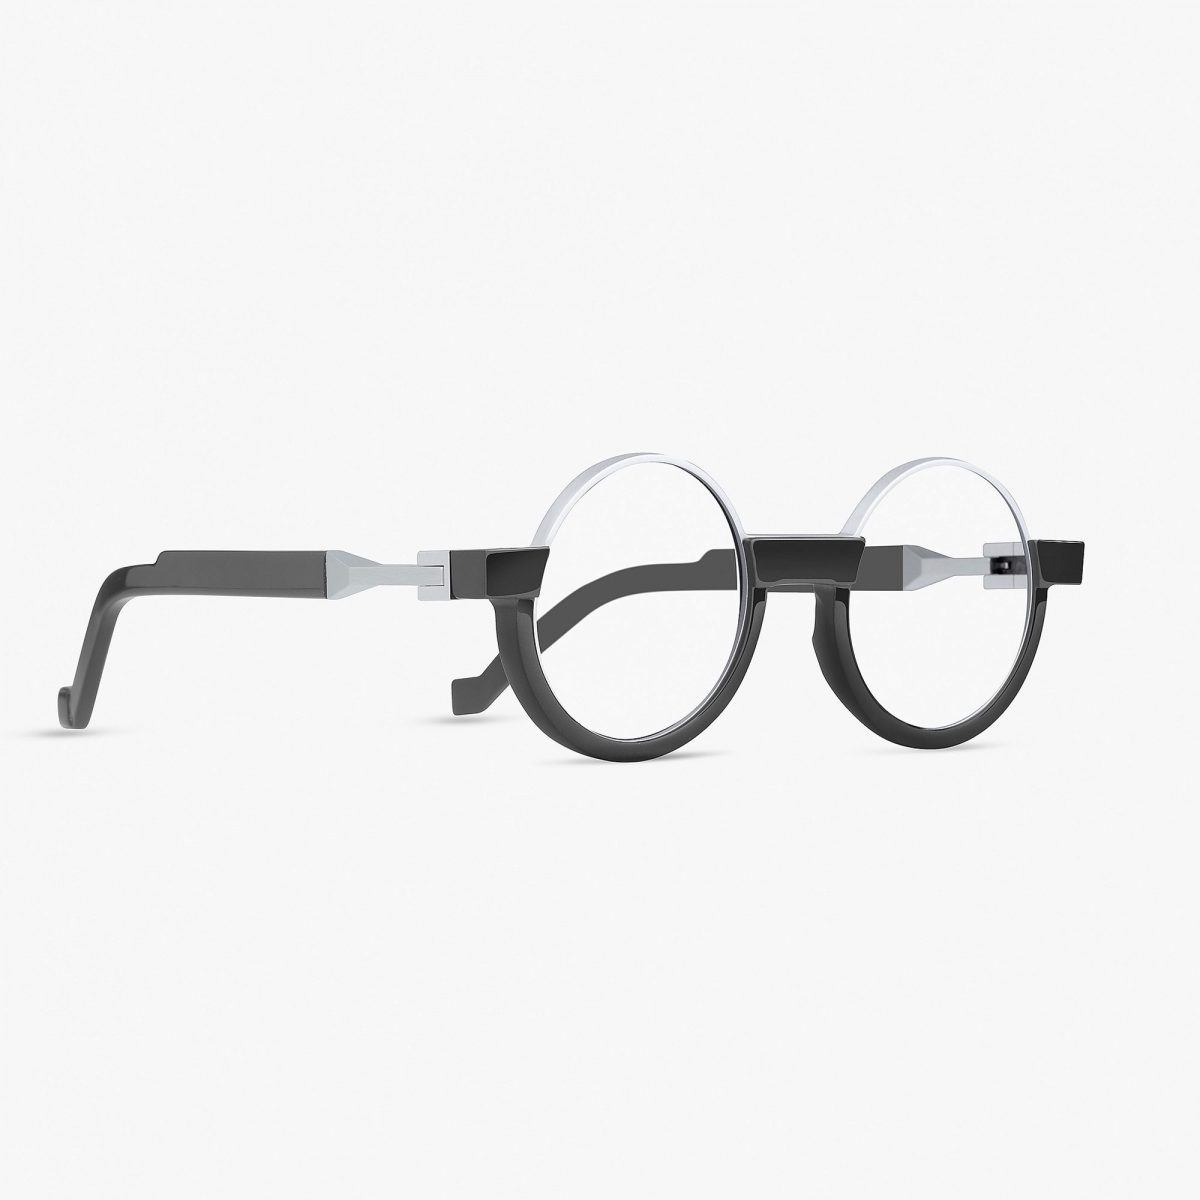 VAVA EYEWEAR ONLINE SHOP CL0006 DARK GREY SIDE